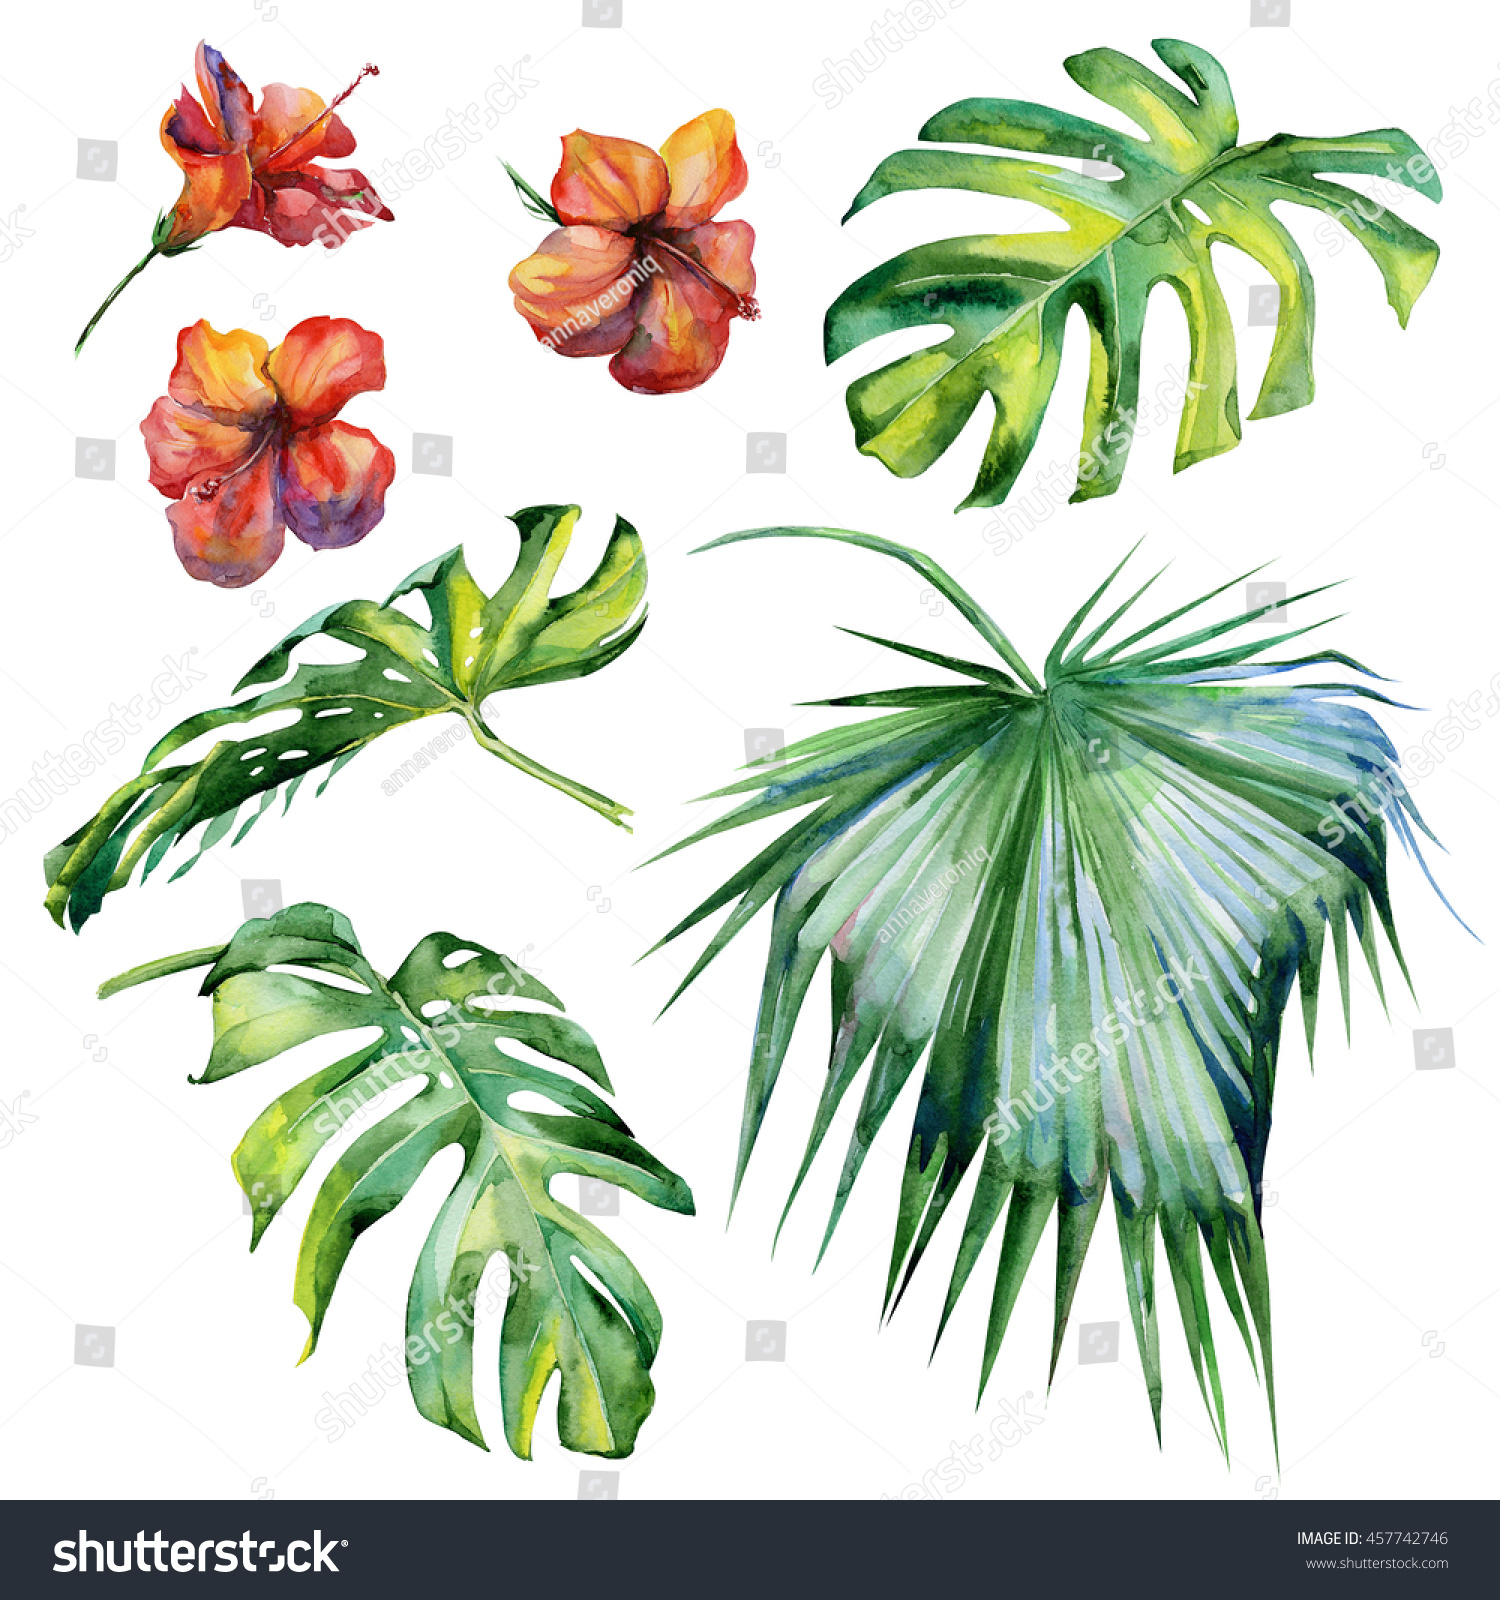 Watercolor illustration set of tropical leaves dense jungle Hand painted Banner with tropic summertime motif may be used as background texture wrapping paper textile or wallpaper design